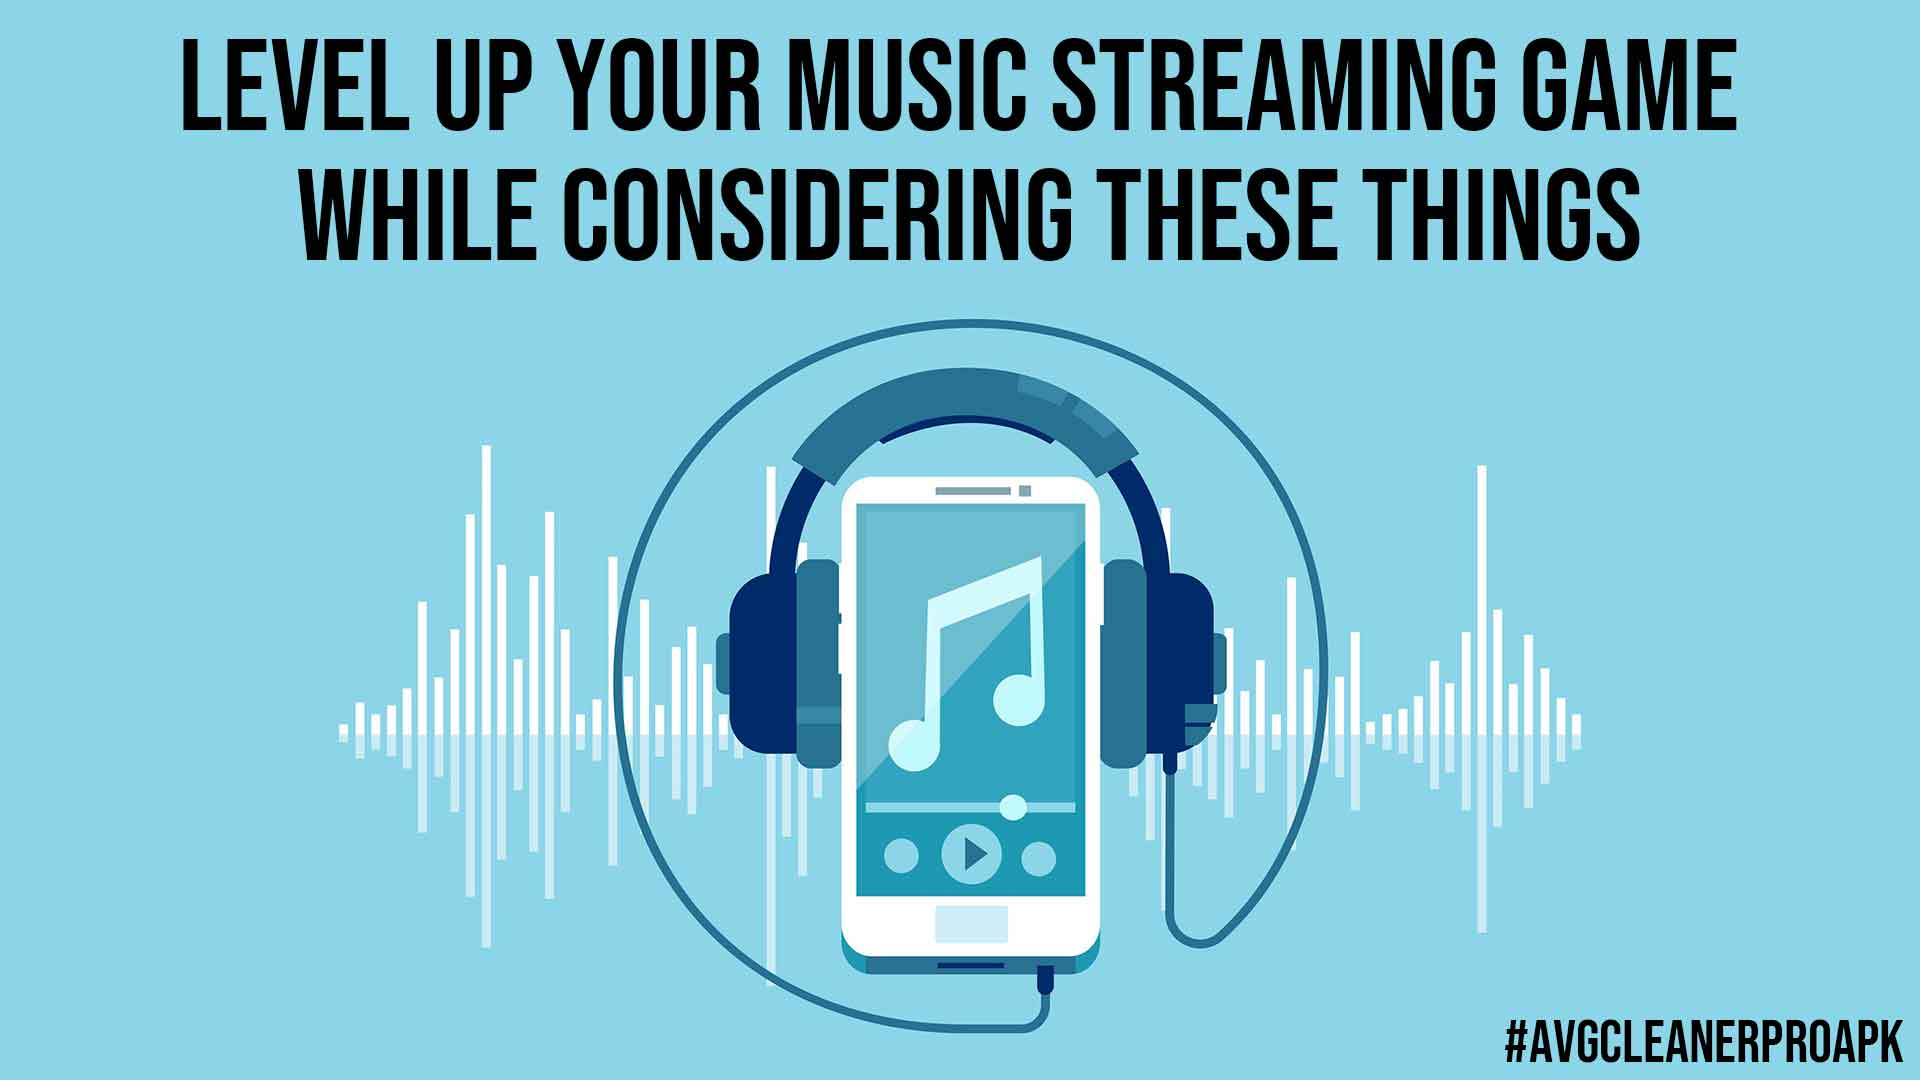 Level Up your Music Streaming Game While Considering These Things